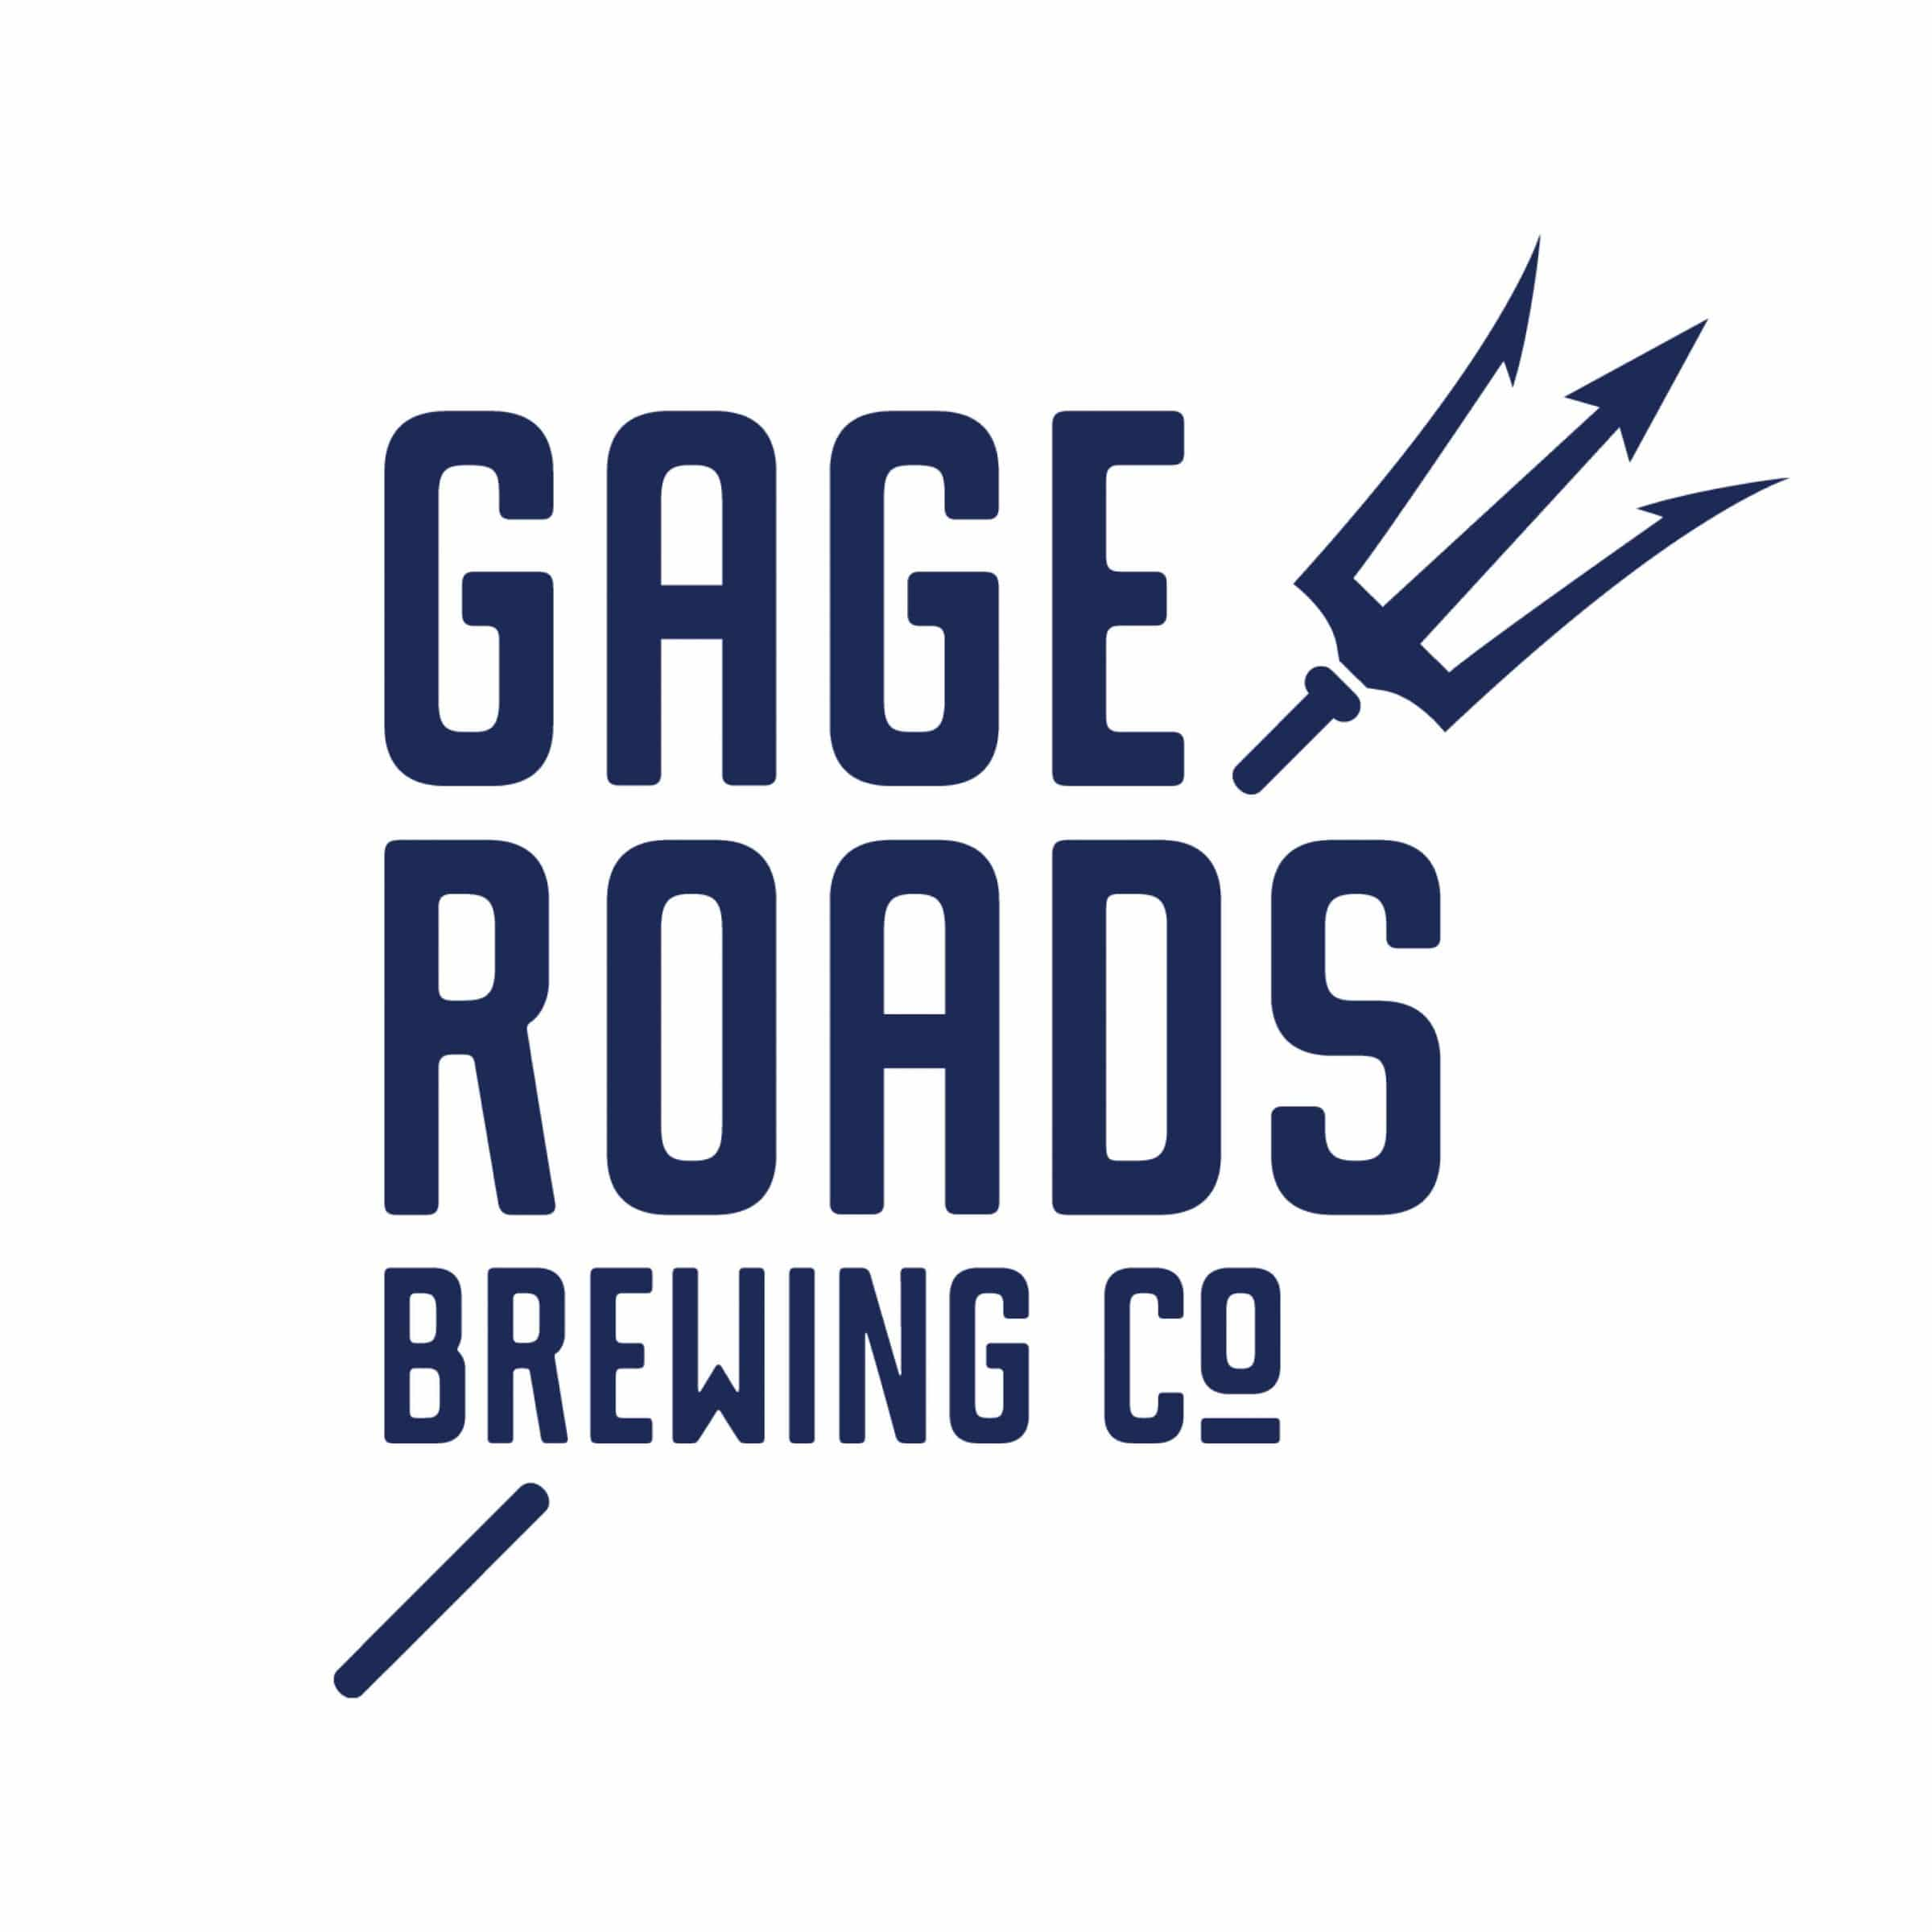 swan river sailing supporter gage roads breing company in perth logo